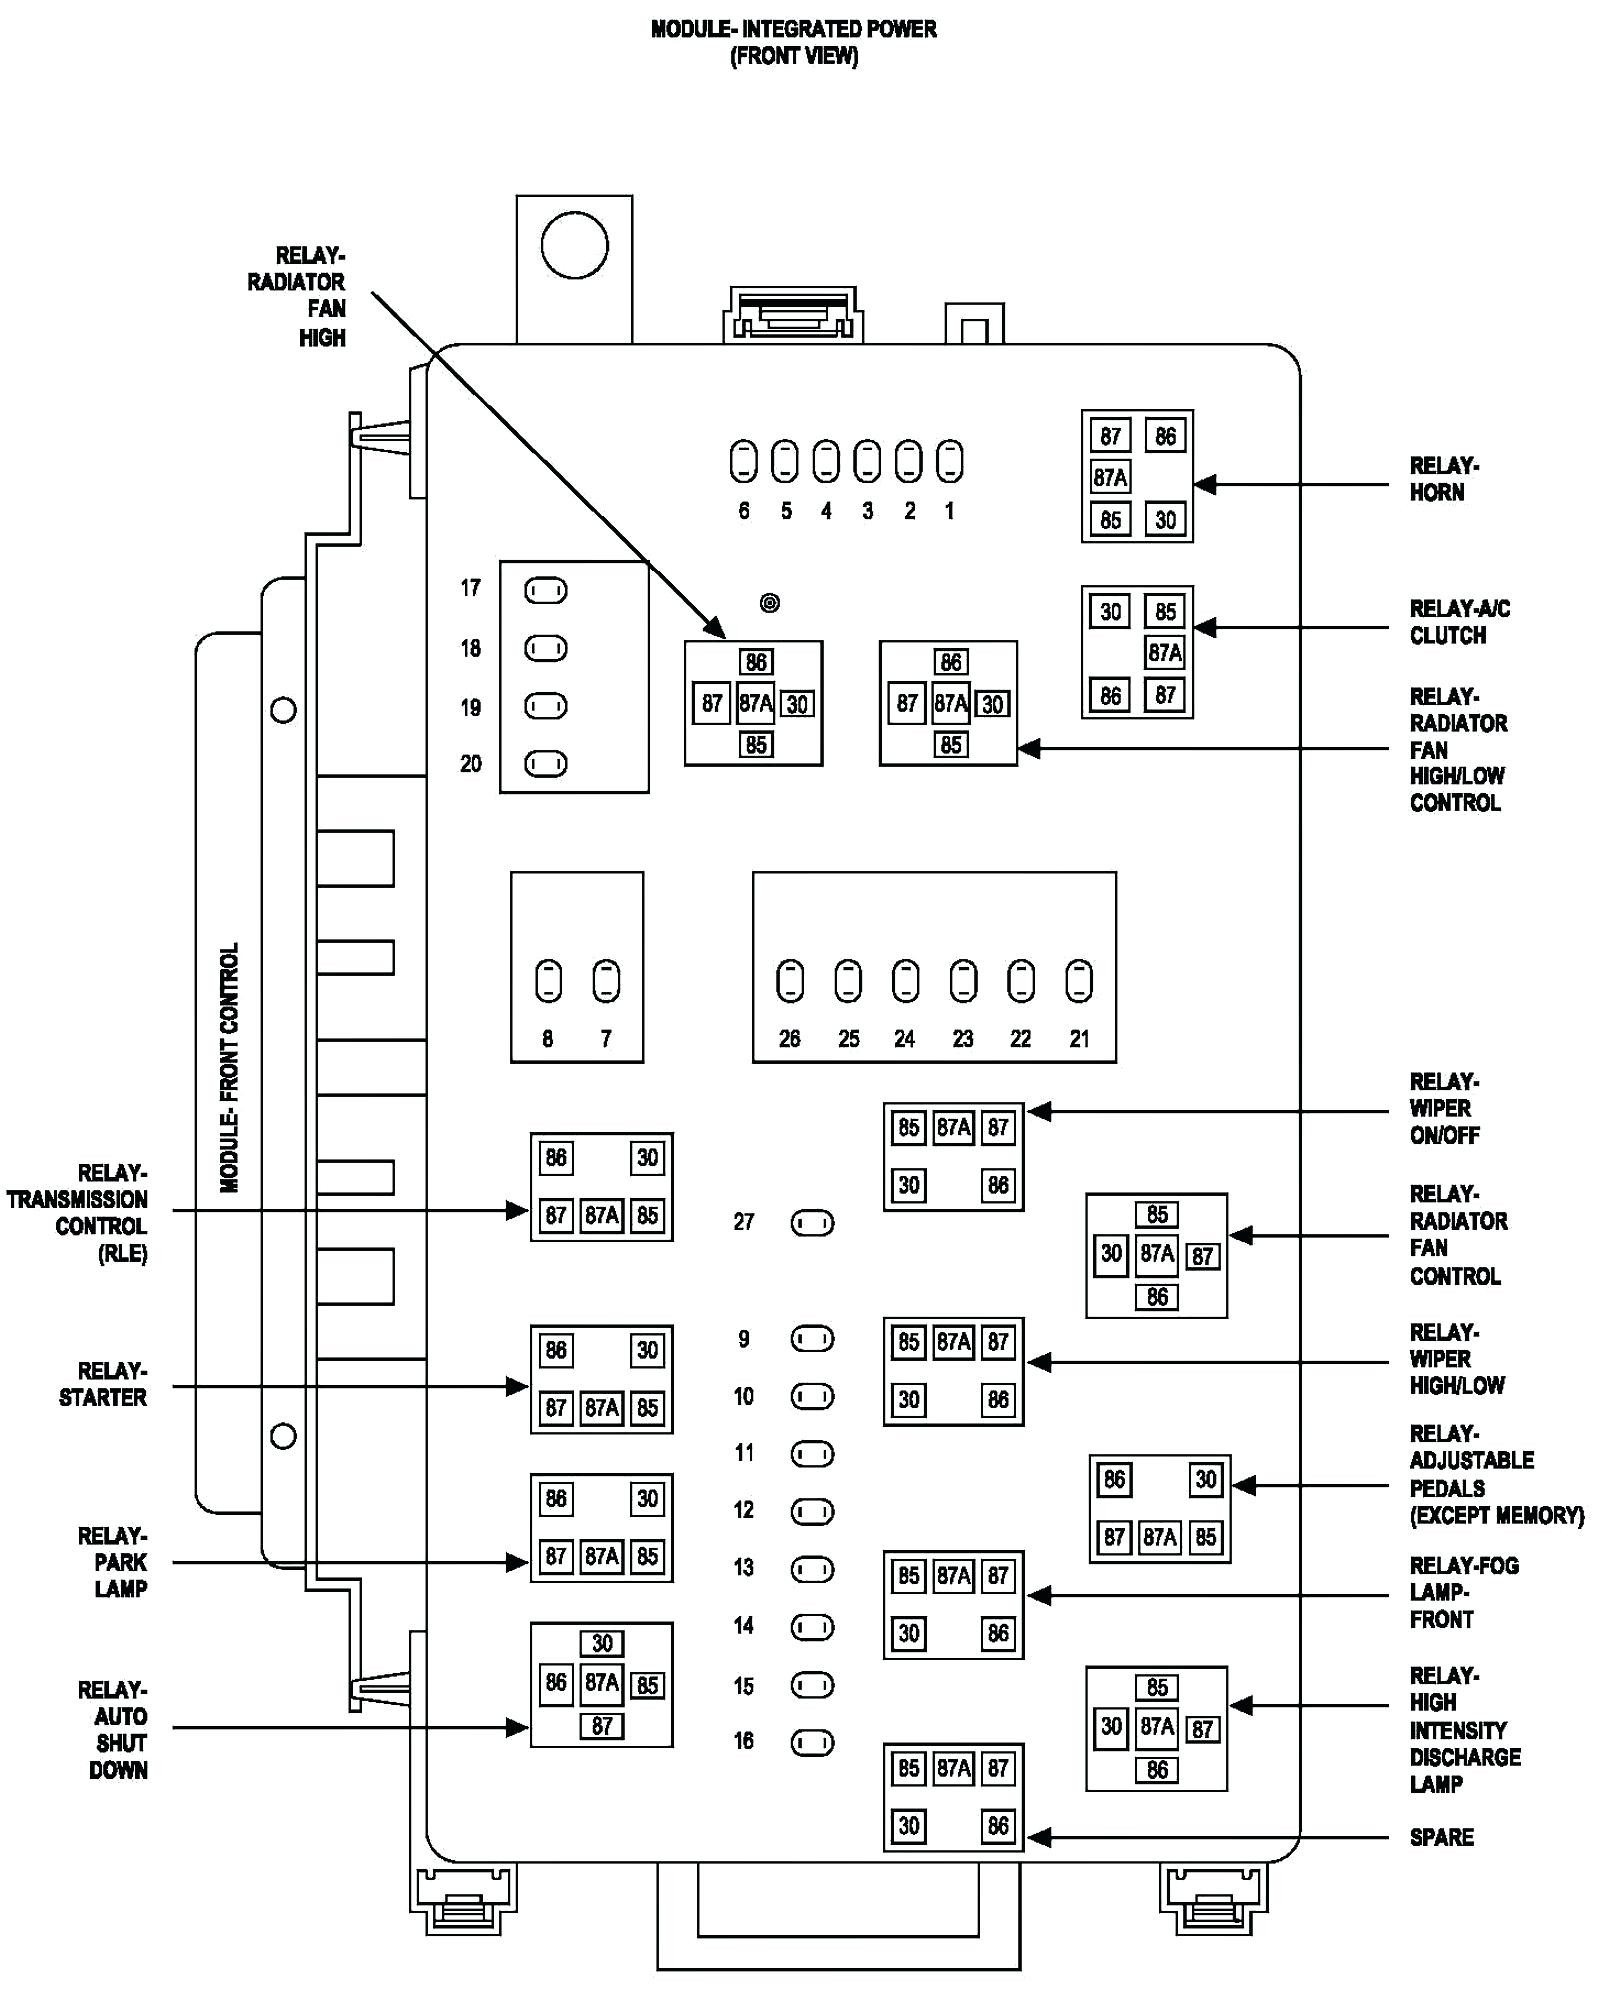 Suzuki Xl7 Fuse Box Diagram